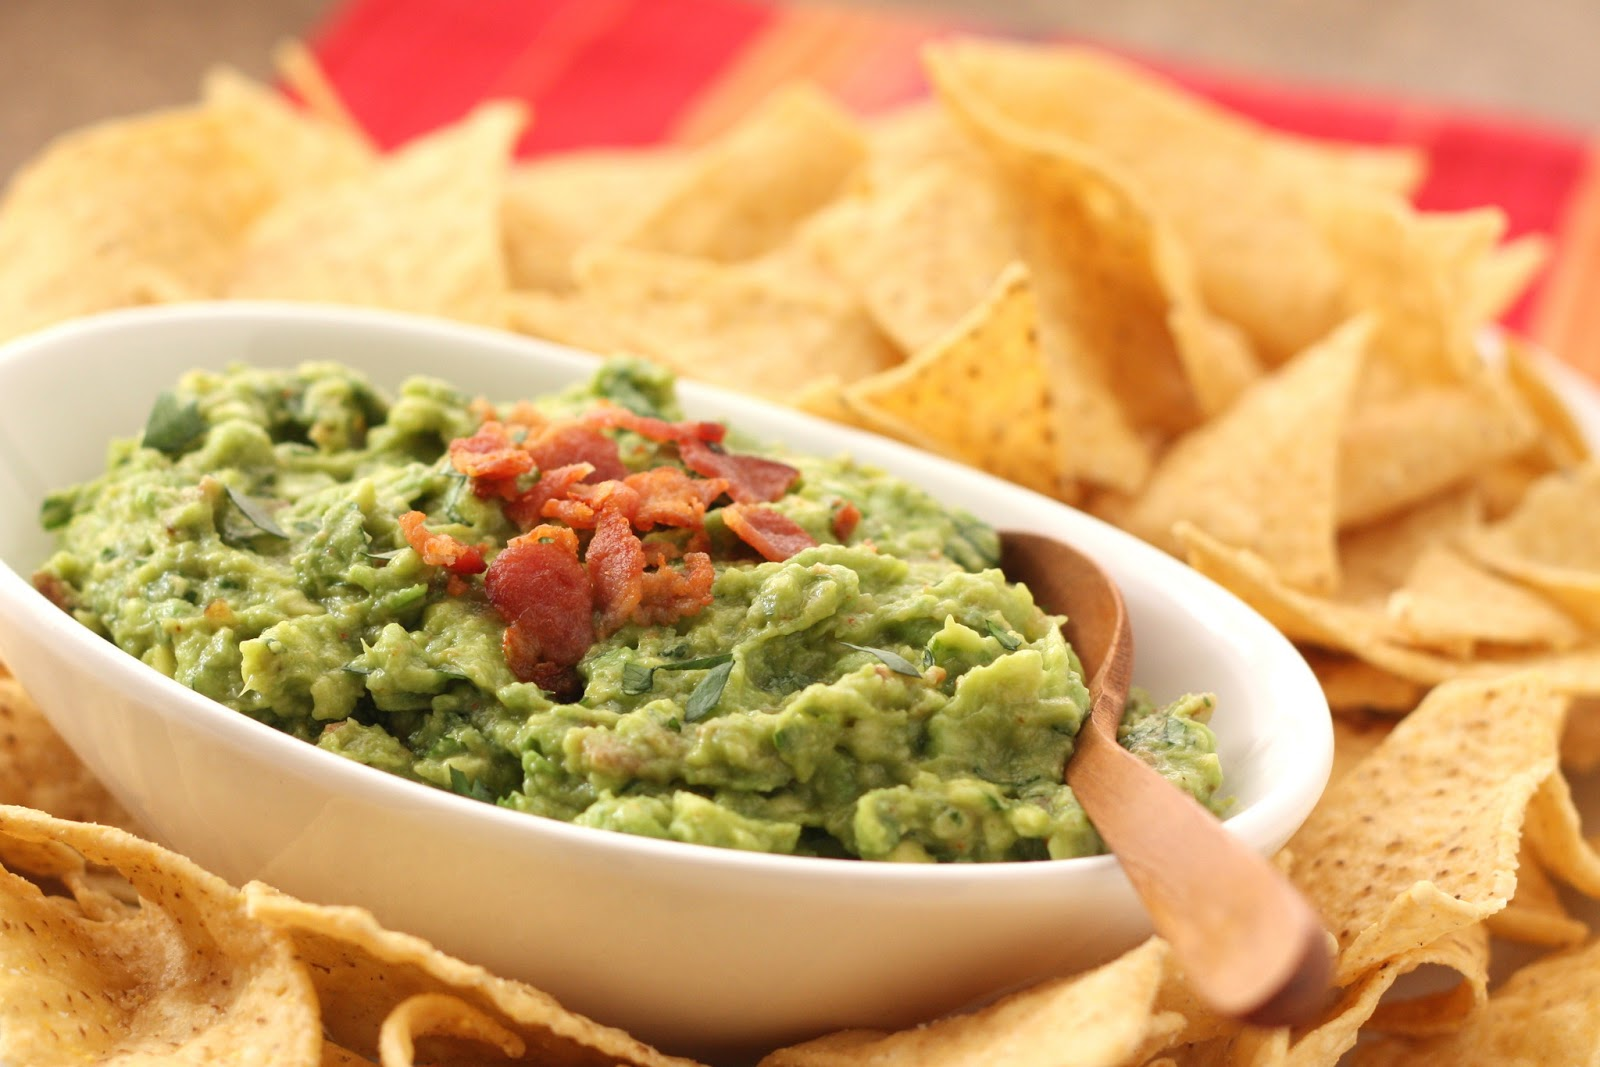 Barefeet In The Kitchen: Roasted Garlic and Bacon Guacamole